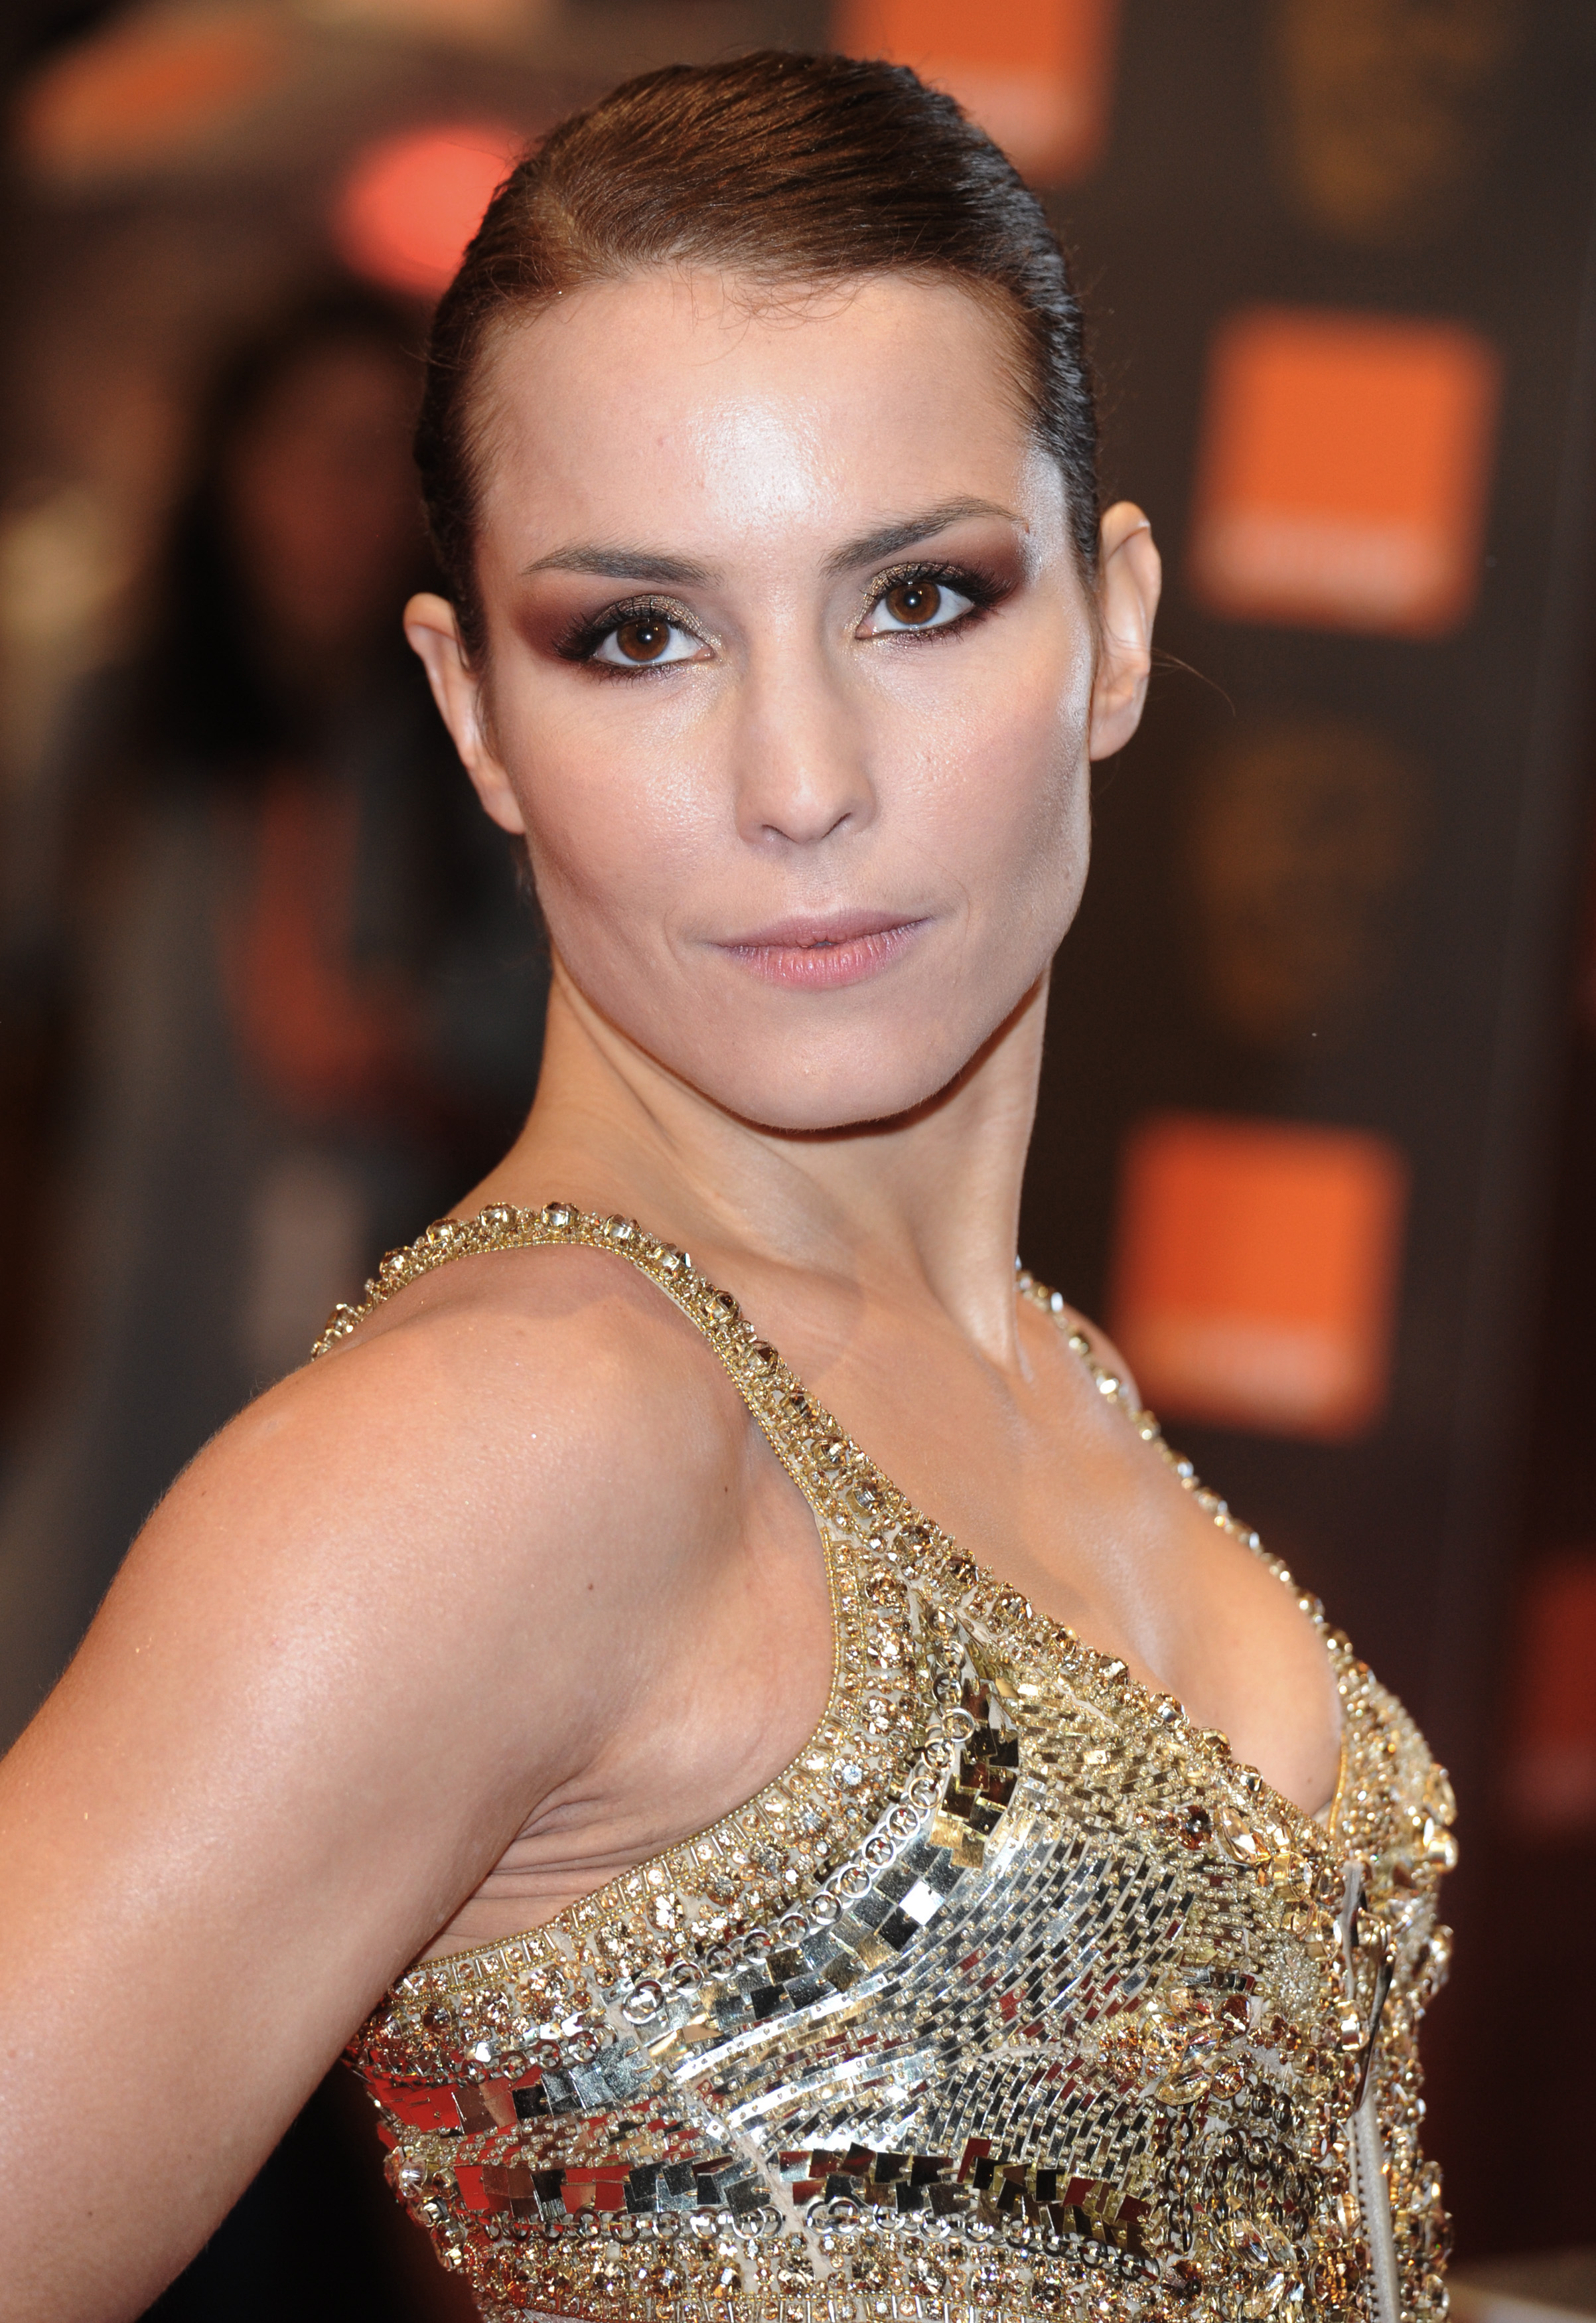 noomi rapace filmsnoomi rapace фото, noomi rapace wiki, noomi rapace lisbeth salander, noomi rapace twitter, noomi rapace 2016, noomi rapace muscles, noomi rapace 2017, noomi rapace girl with the dragon tattoo, noomi rapace biceps, noomi rapace imdb, noomi rapace and tom hardy, noomi rapace фильмография, noomi rapace interview 2016, noomi rapace instagram, noomi rapace prometheus, noomi rapace quotes, noomi rapace gif, noomi rapace films, noomi rapace abs, noomi rapace jamie hince